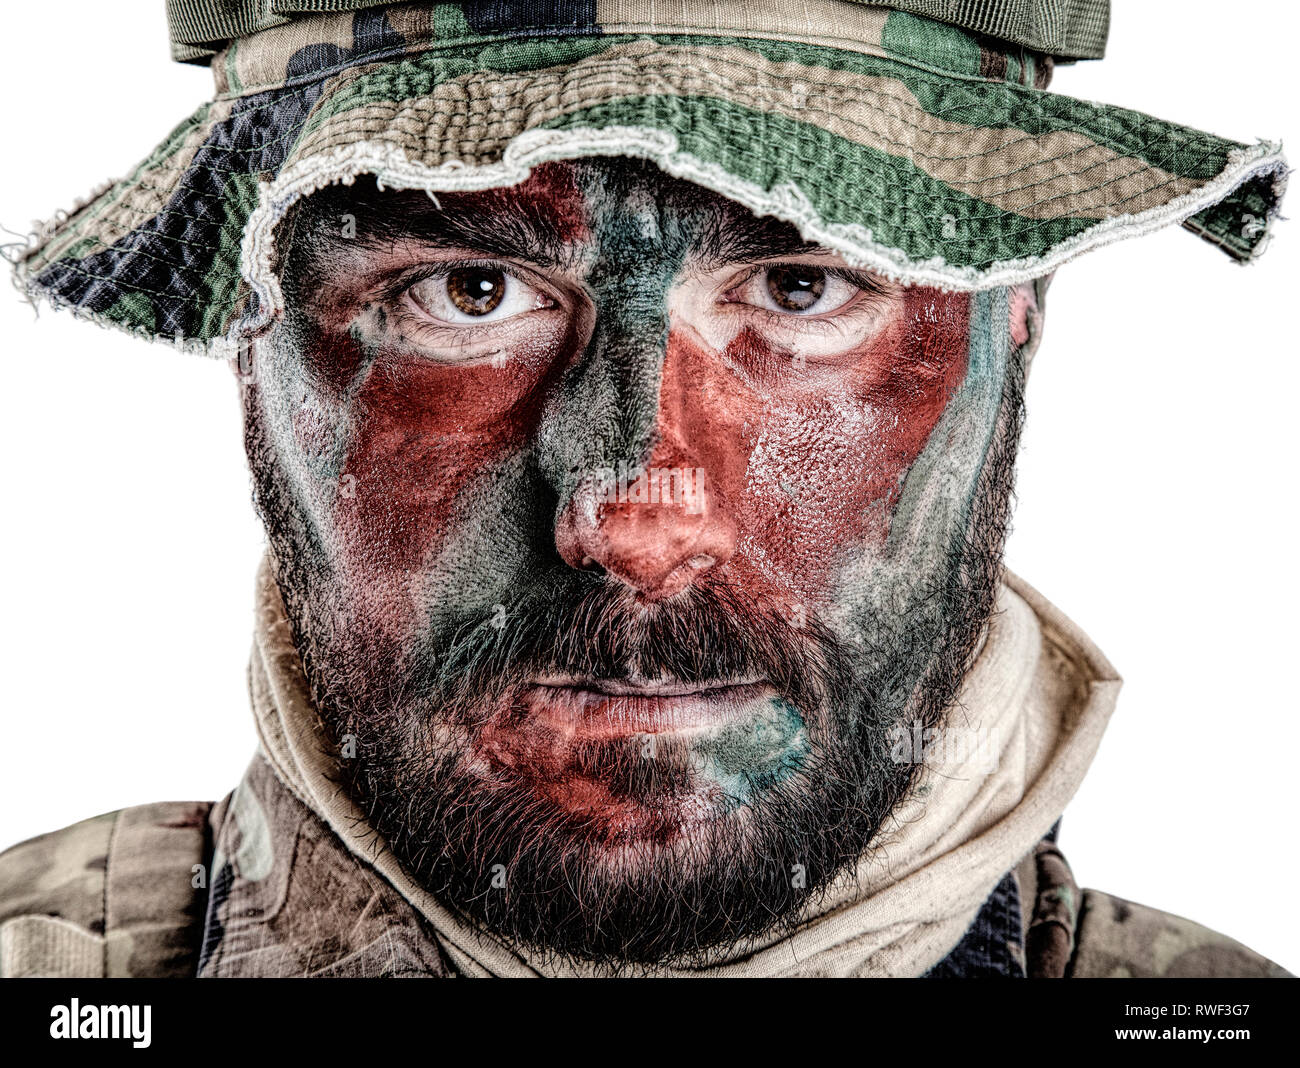 e35131faea7f2 U.S. special forces soldier wearing jungle hat with painted red and green  face. - Stock